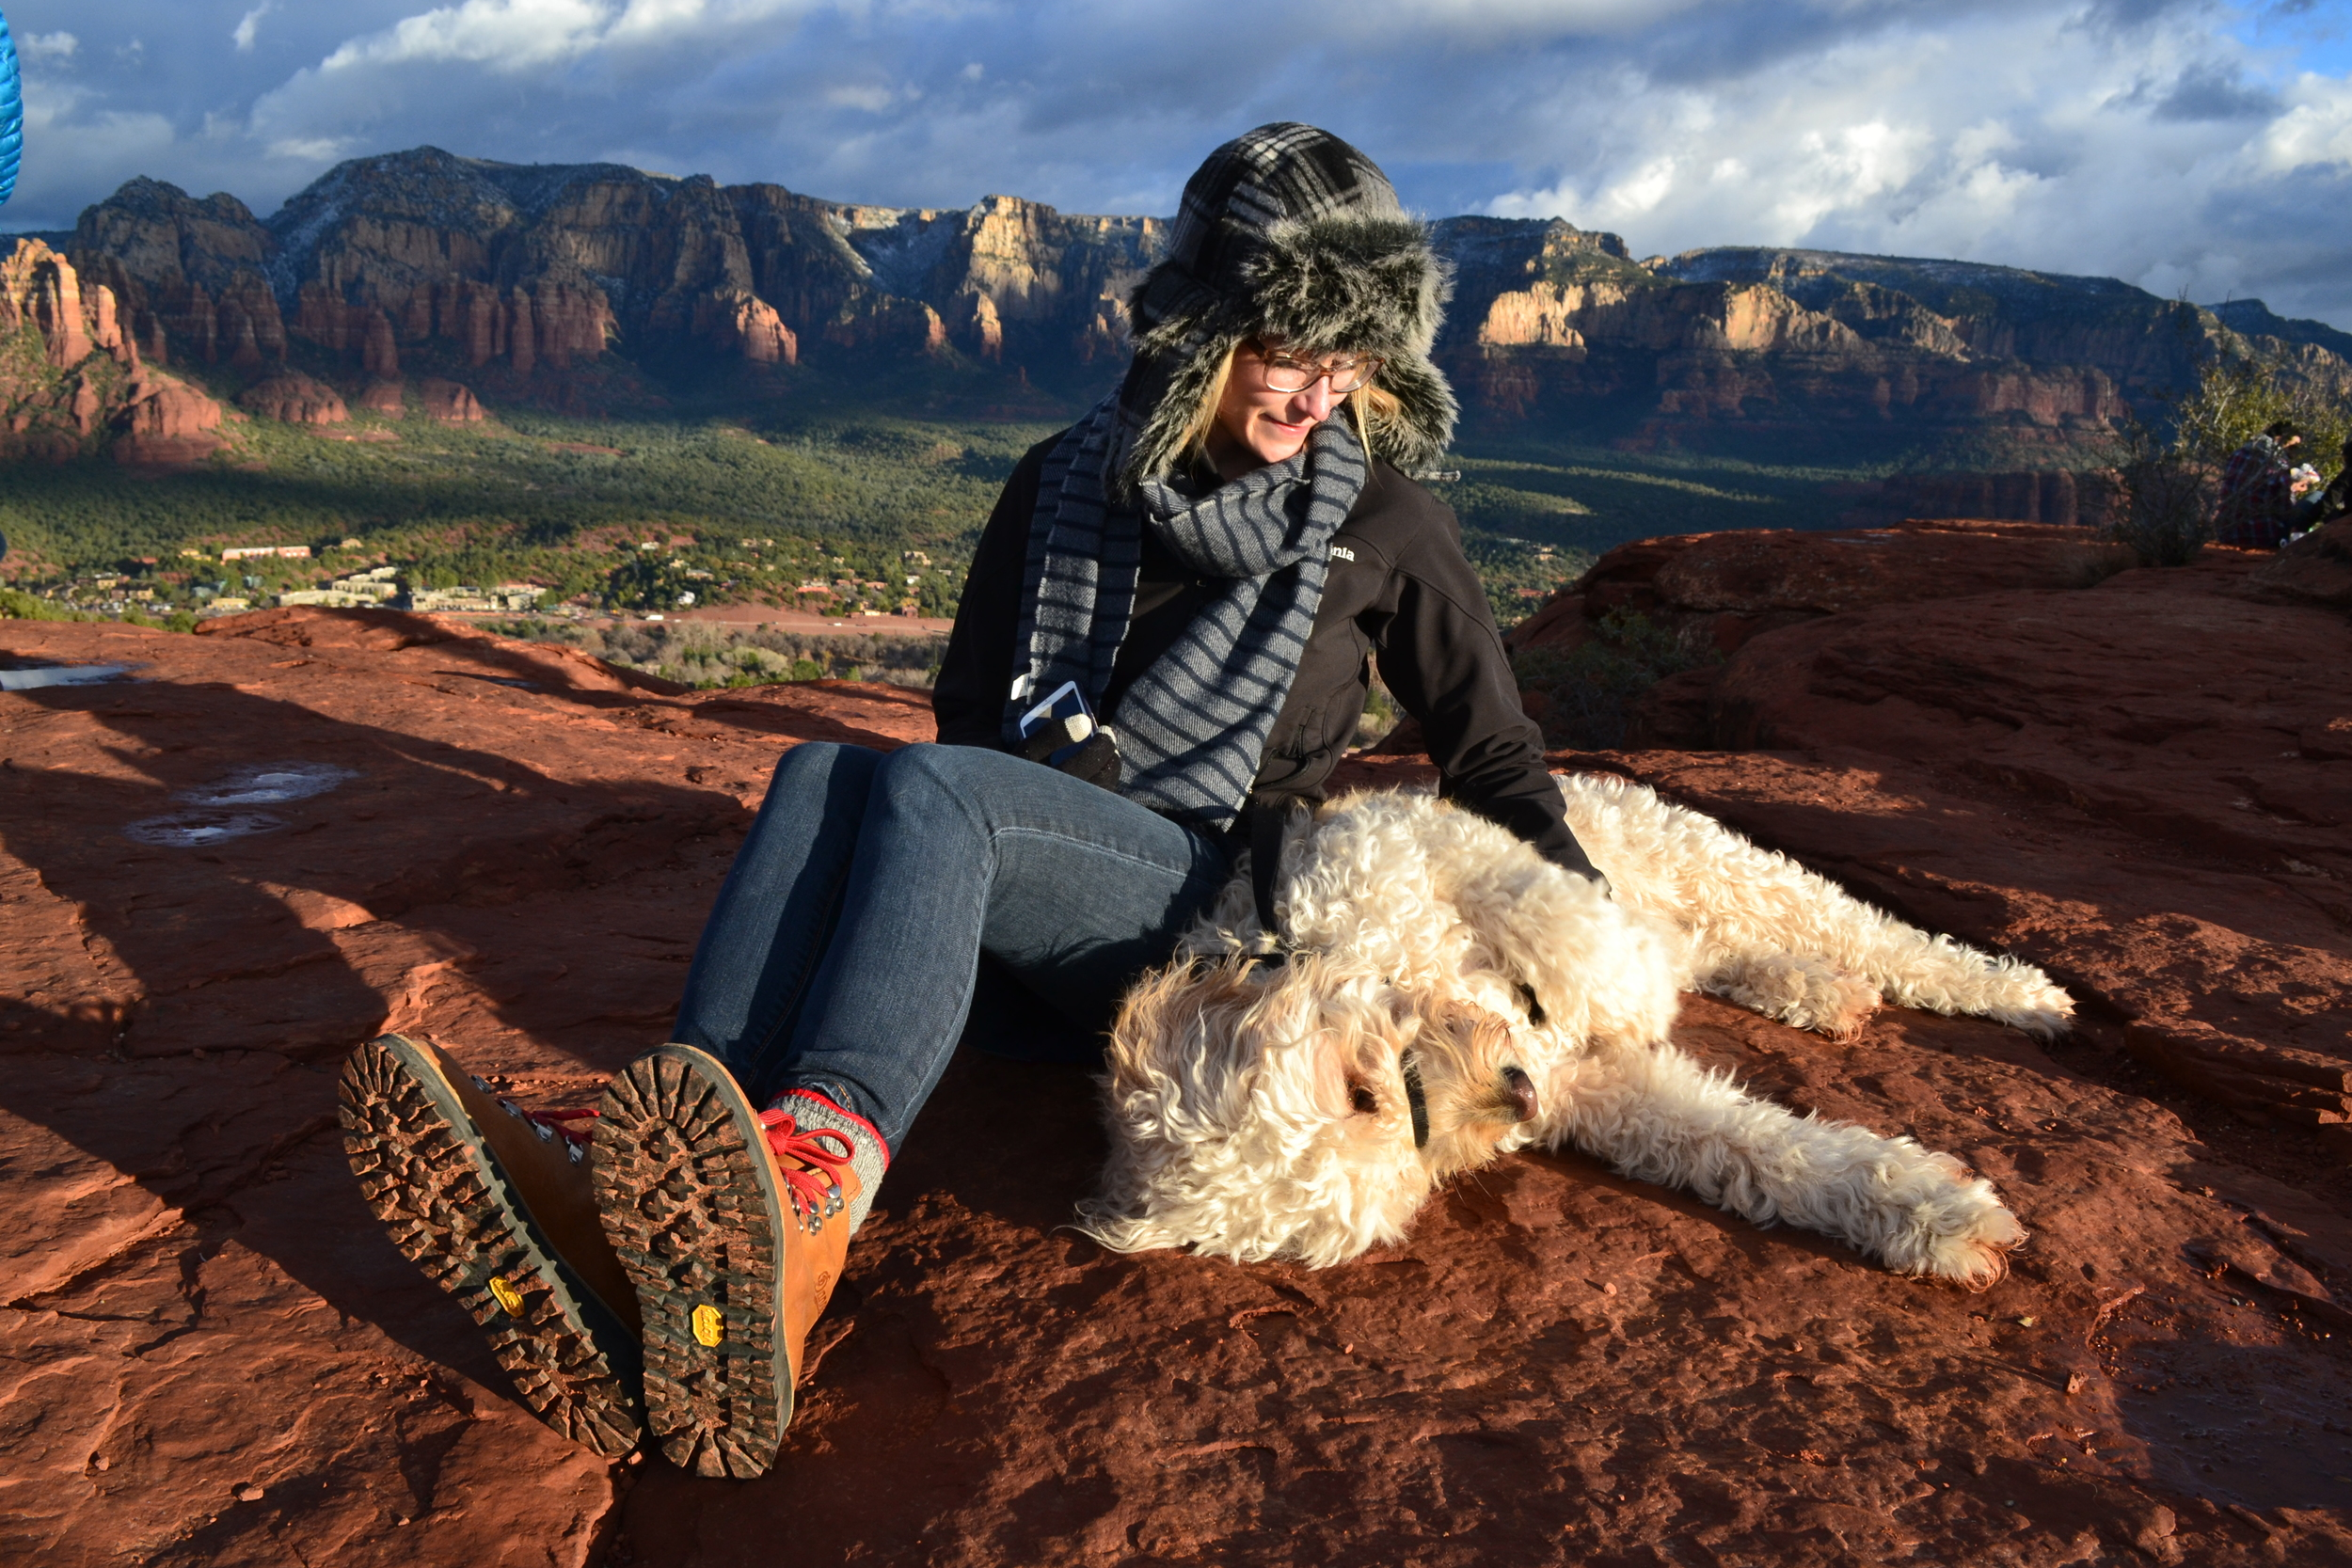 Belly rubs on top of the airport mesa in Sedona? Yes, please.